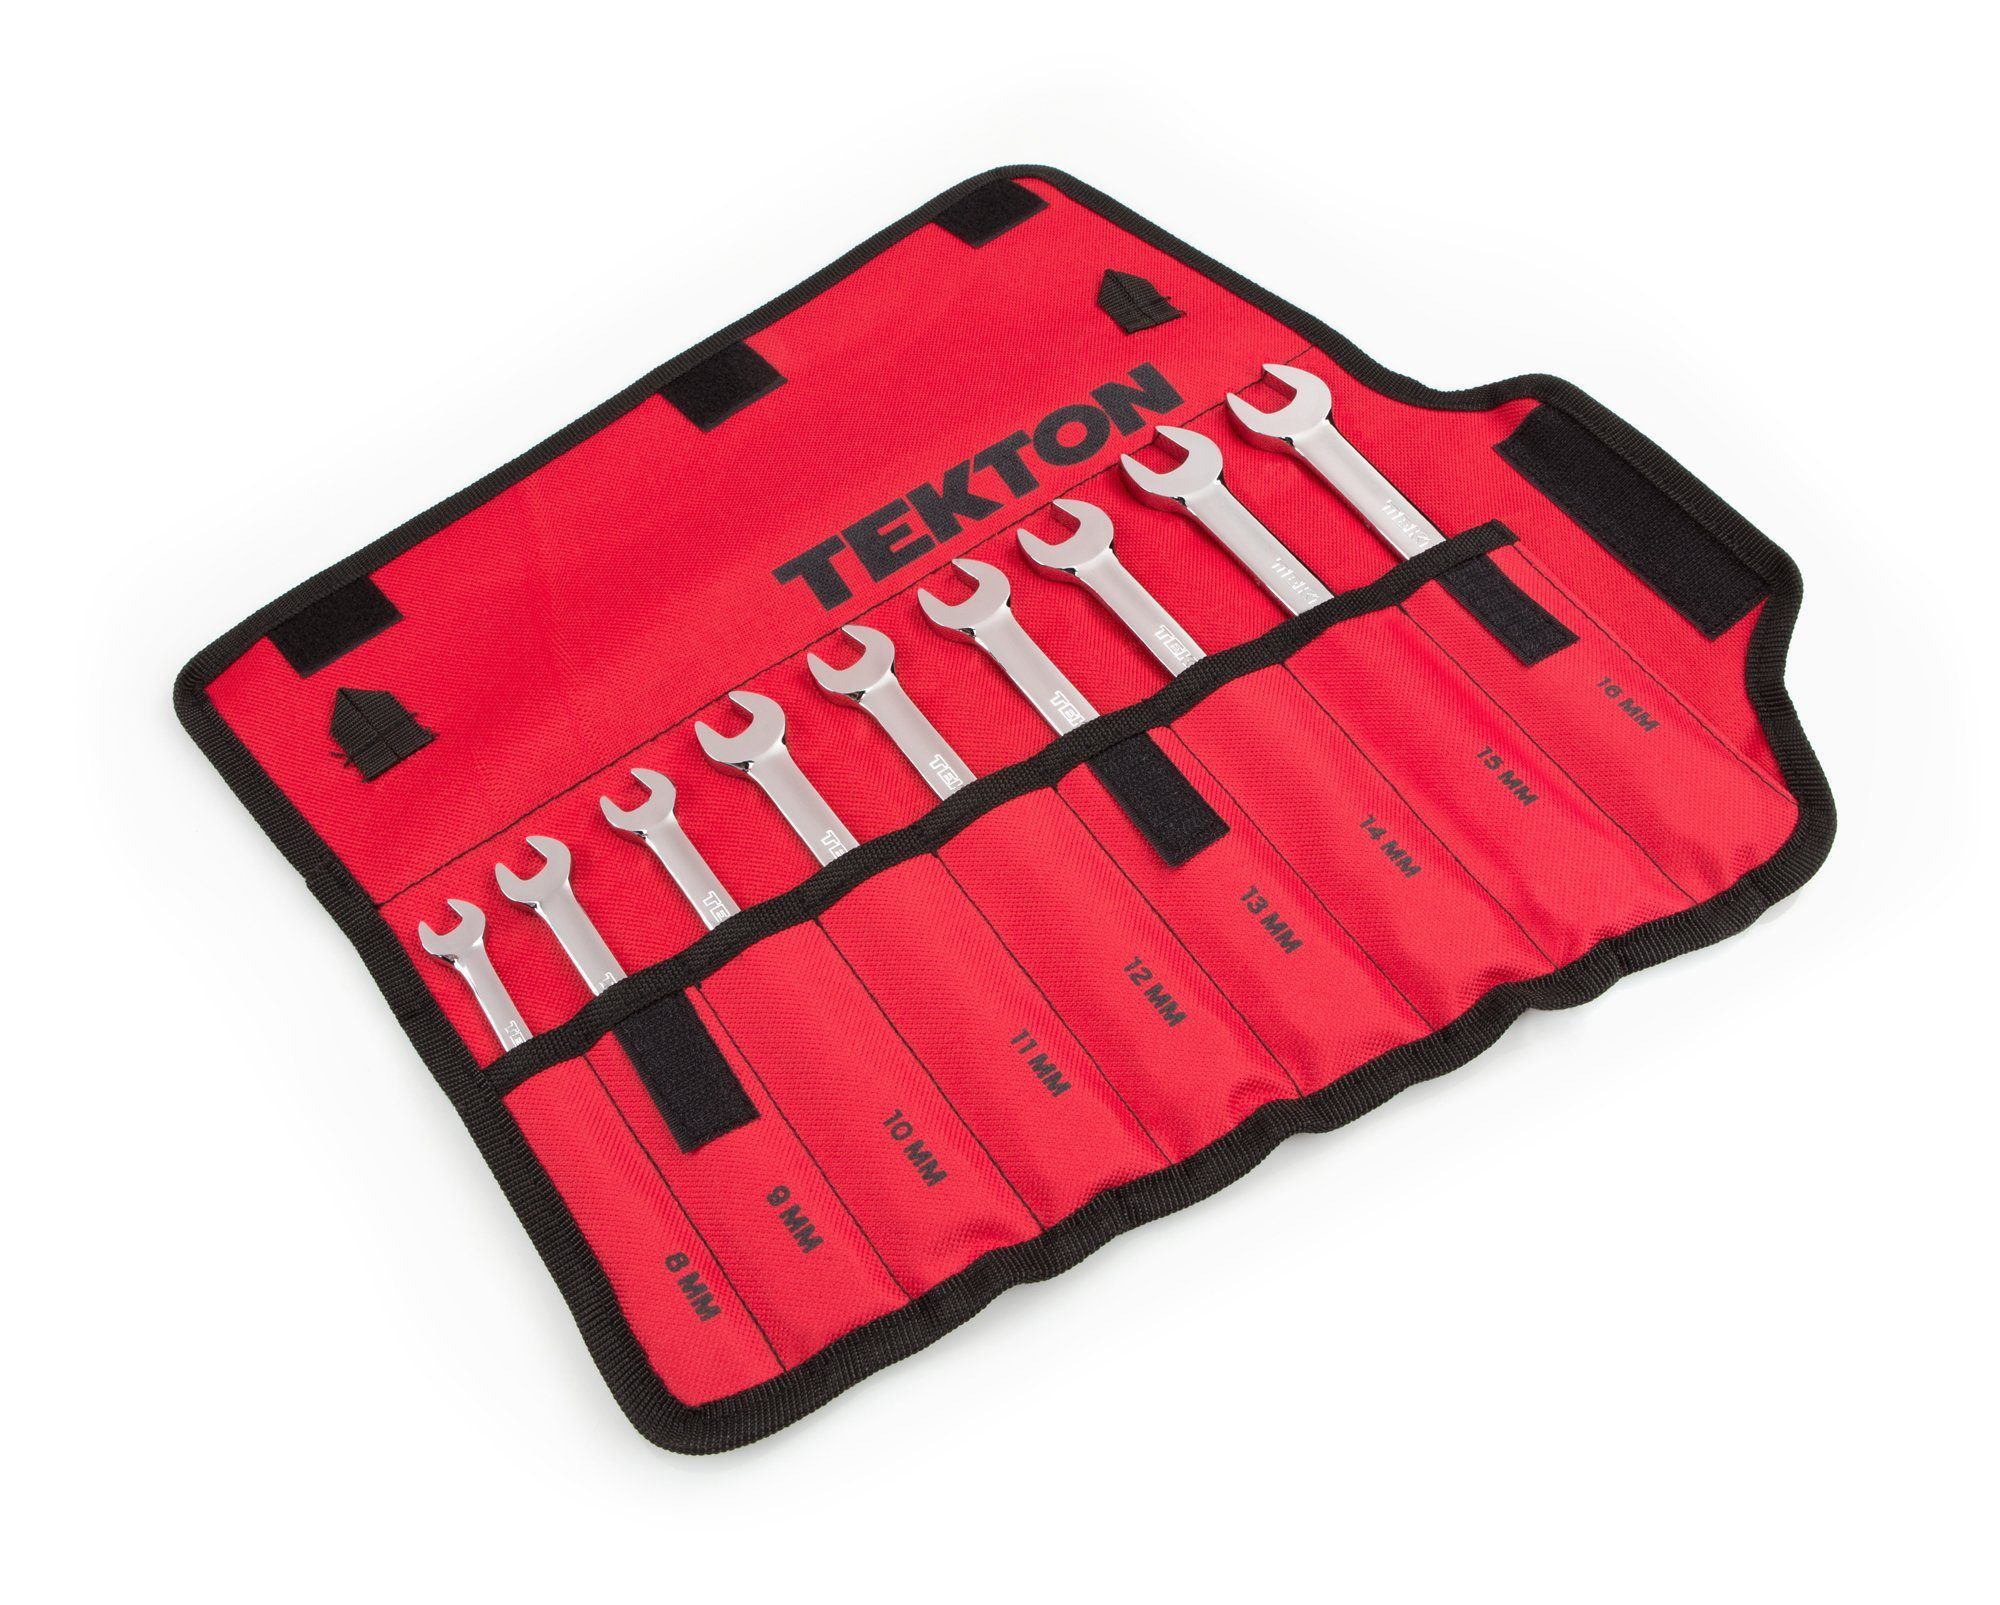 TEKTON WRN53187 Ratcheting Combination Wrench Set with Roll-up Storage Pouch, Metric, 8 mm - 16 mm, 9-Piece